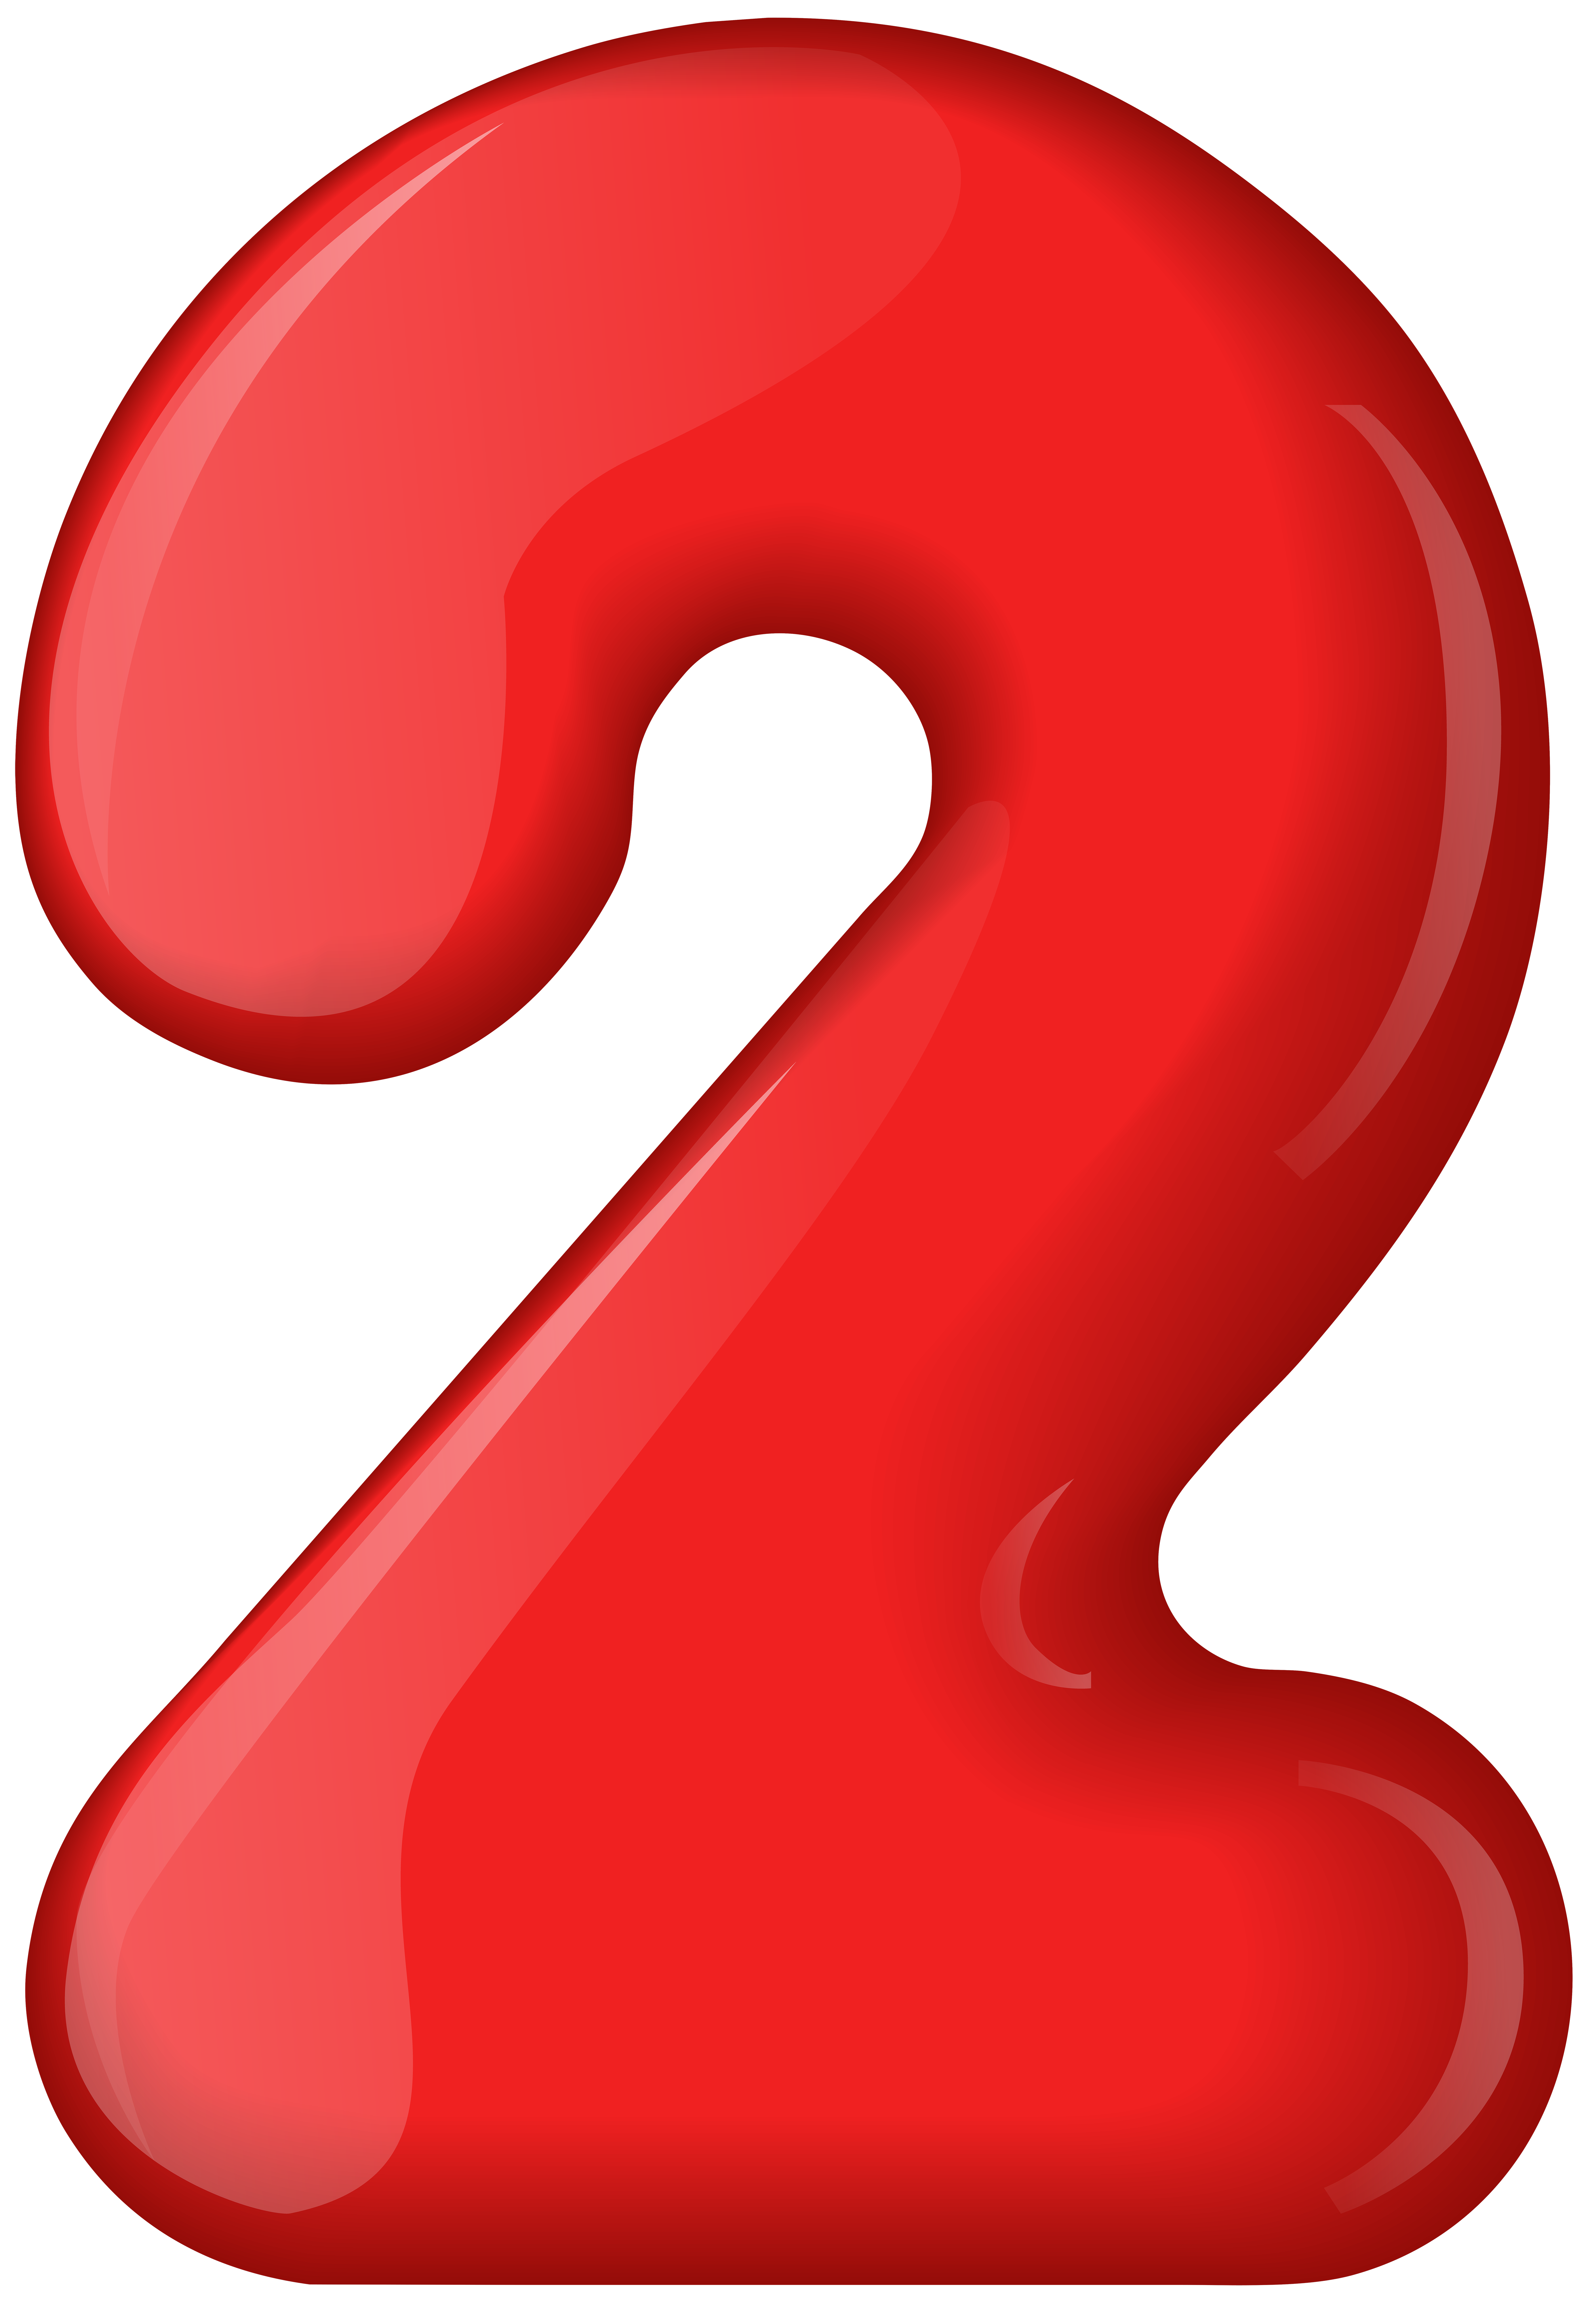 Transparent numbers clipart royalty free library Red Number Two Transparent PNG Clip Art | Gallery ... royalty free library